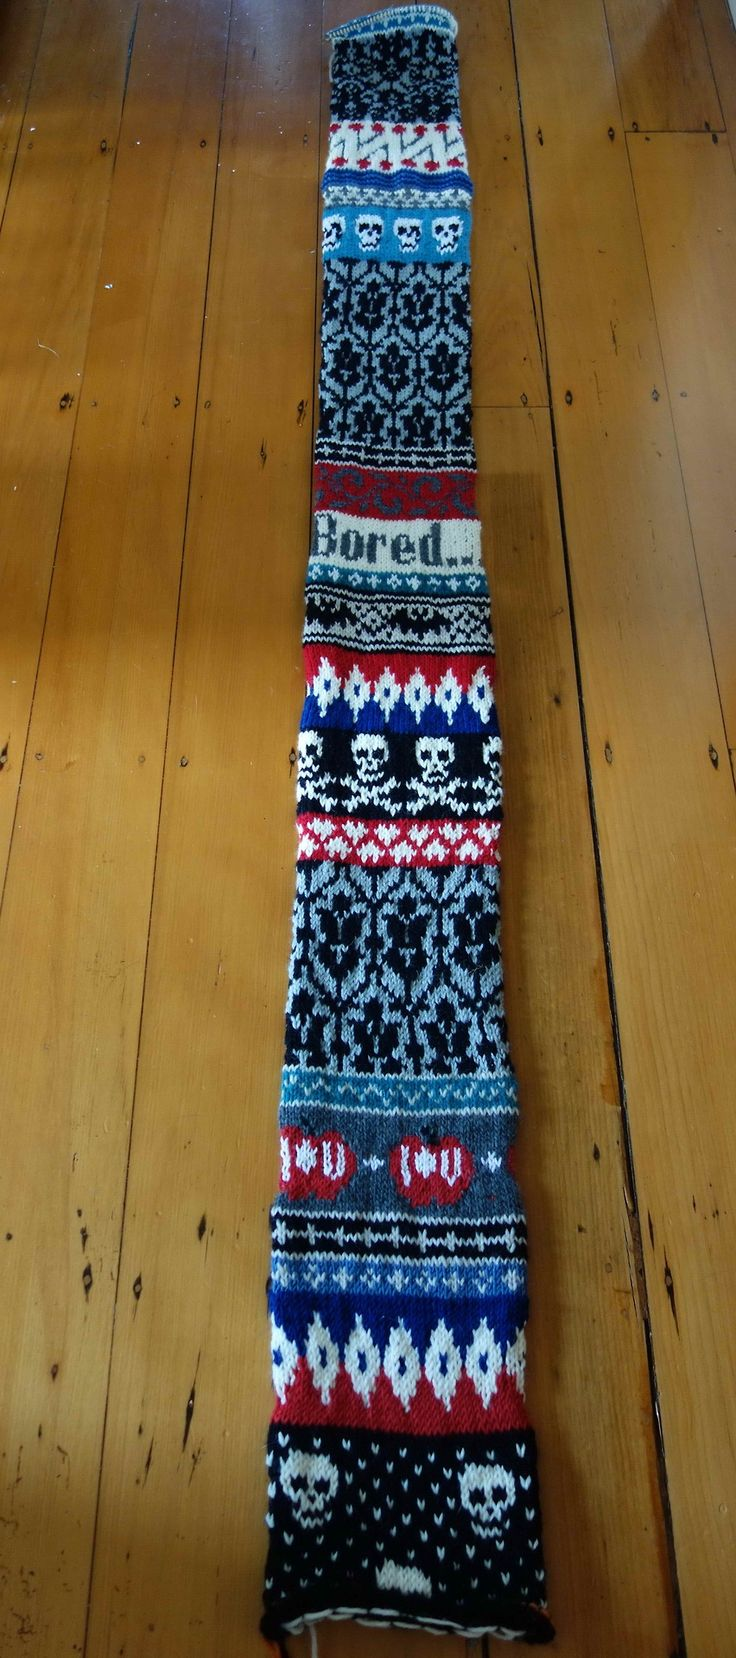 Knitted Sherlock scarf (http://professorfonz.tumblr.com/post/48741987970/knitting-is-boring-pattern-selections-here-are)